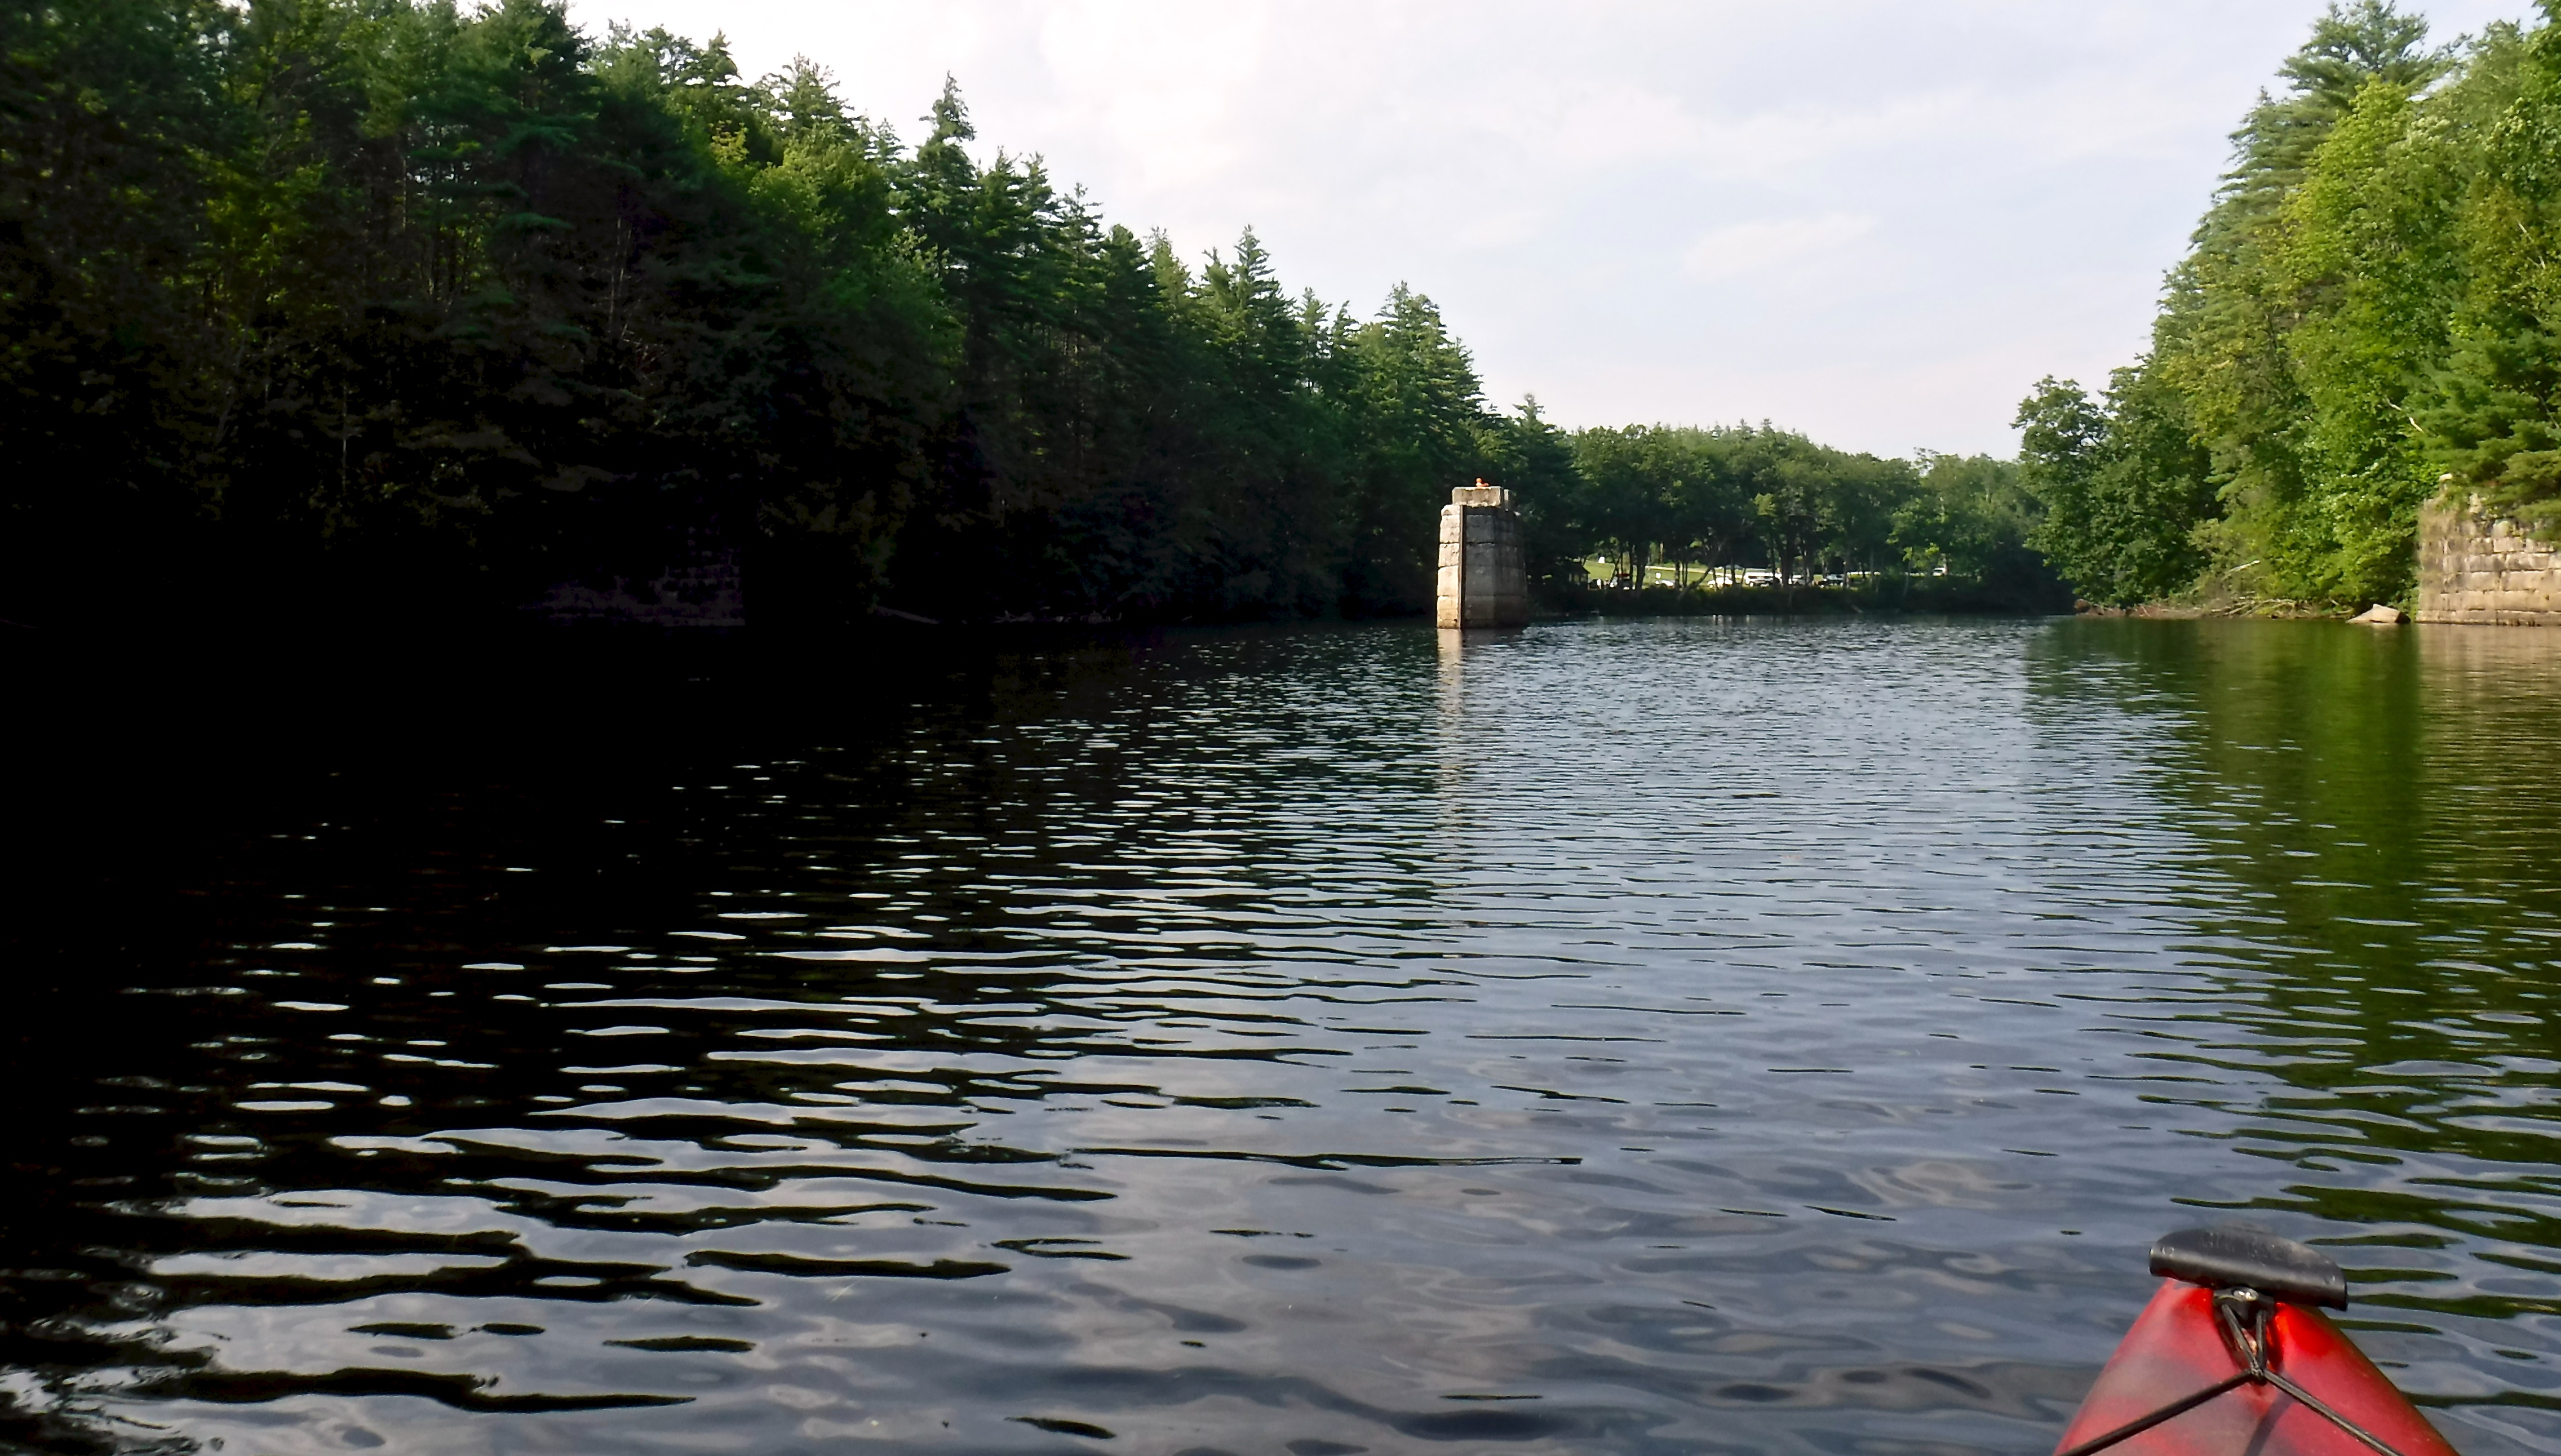 kayaking-contoocook-river-contoocook-canoe-company-boat-launch